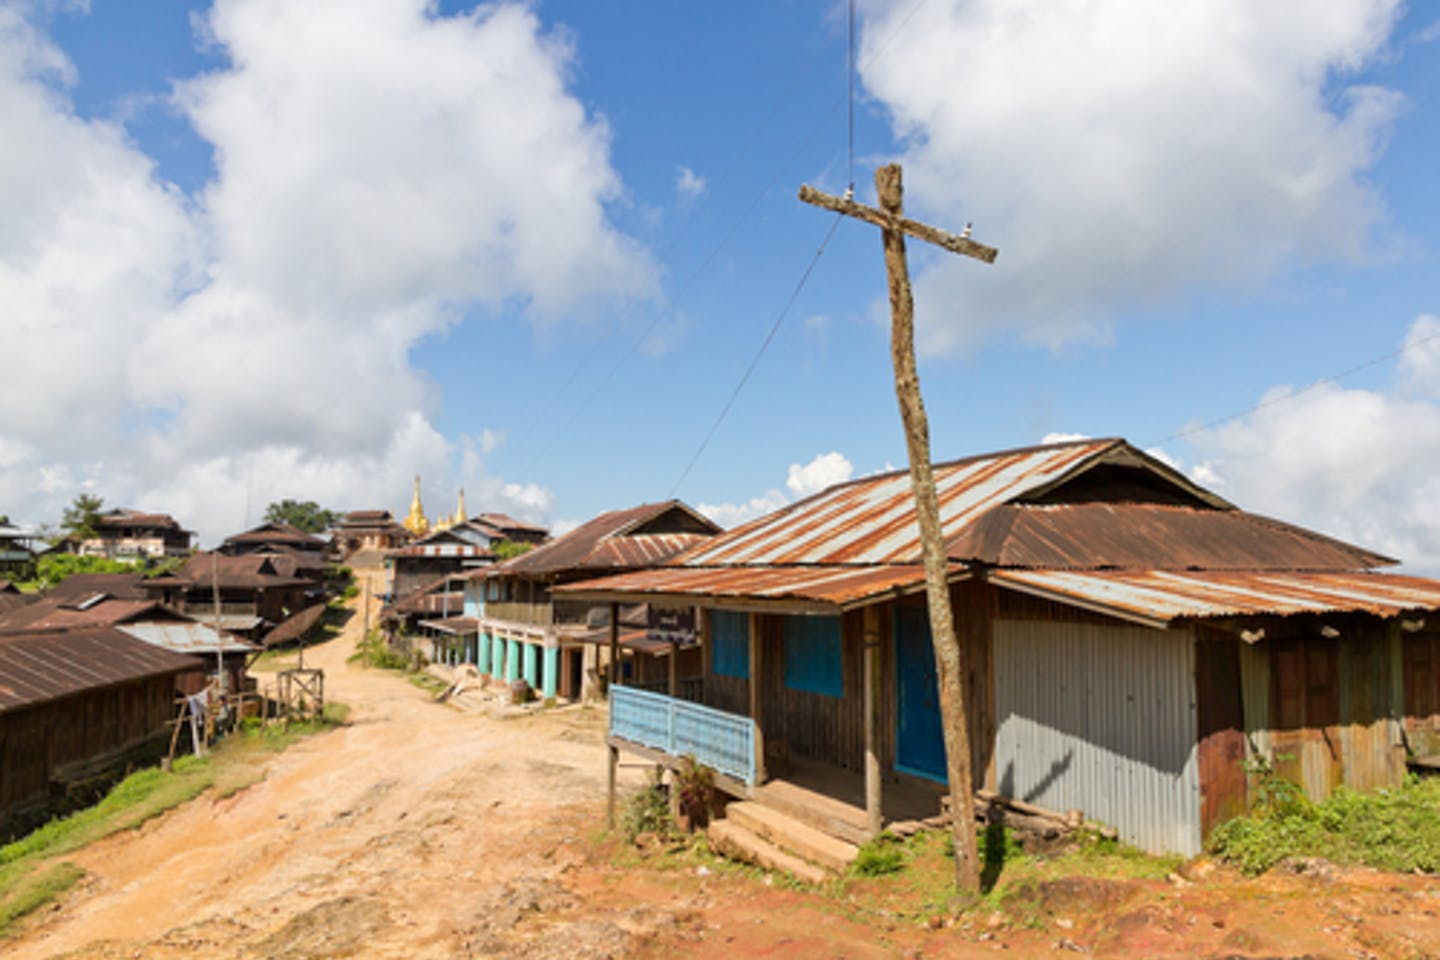 Electricity infrastructure in Myanmar